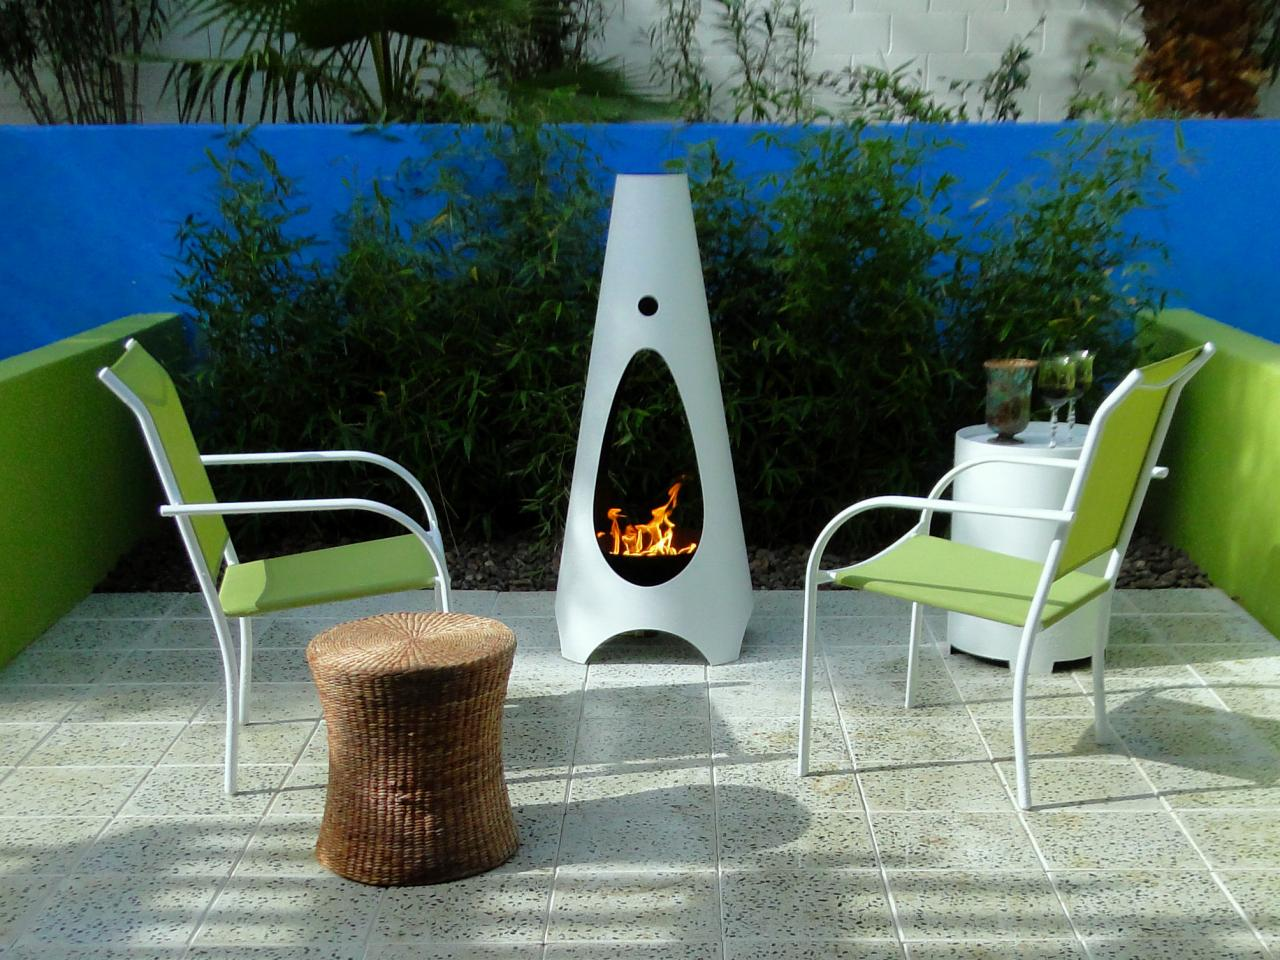 Wonderful Elegant And Minimalist White Chiminea Fire Pit Design On Patio With Green  Chairs And Garden And